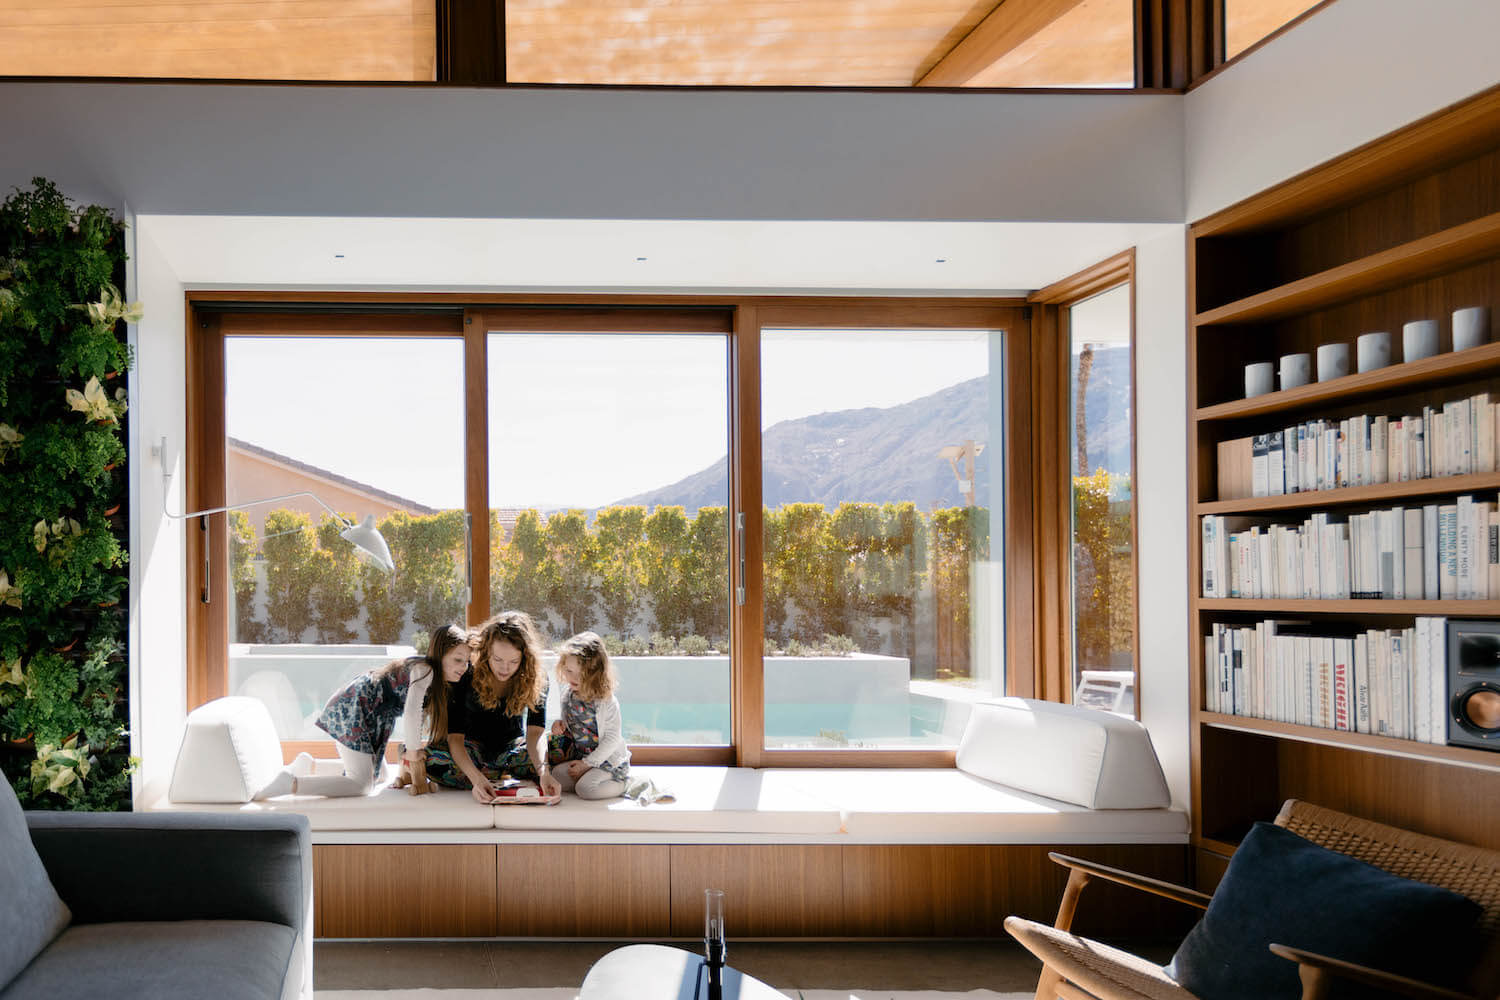 Meelena Turkel and her daughters on the window seat in Axiom Desert House.